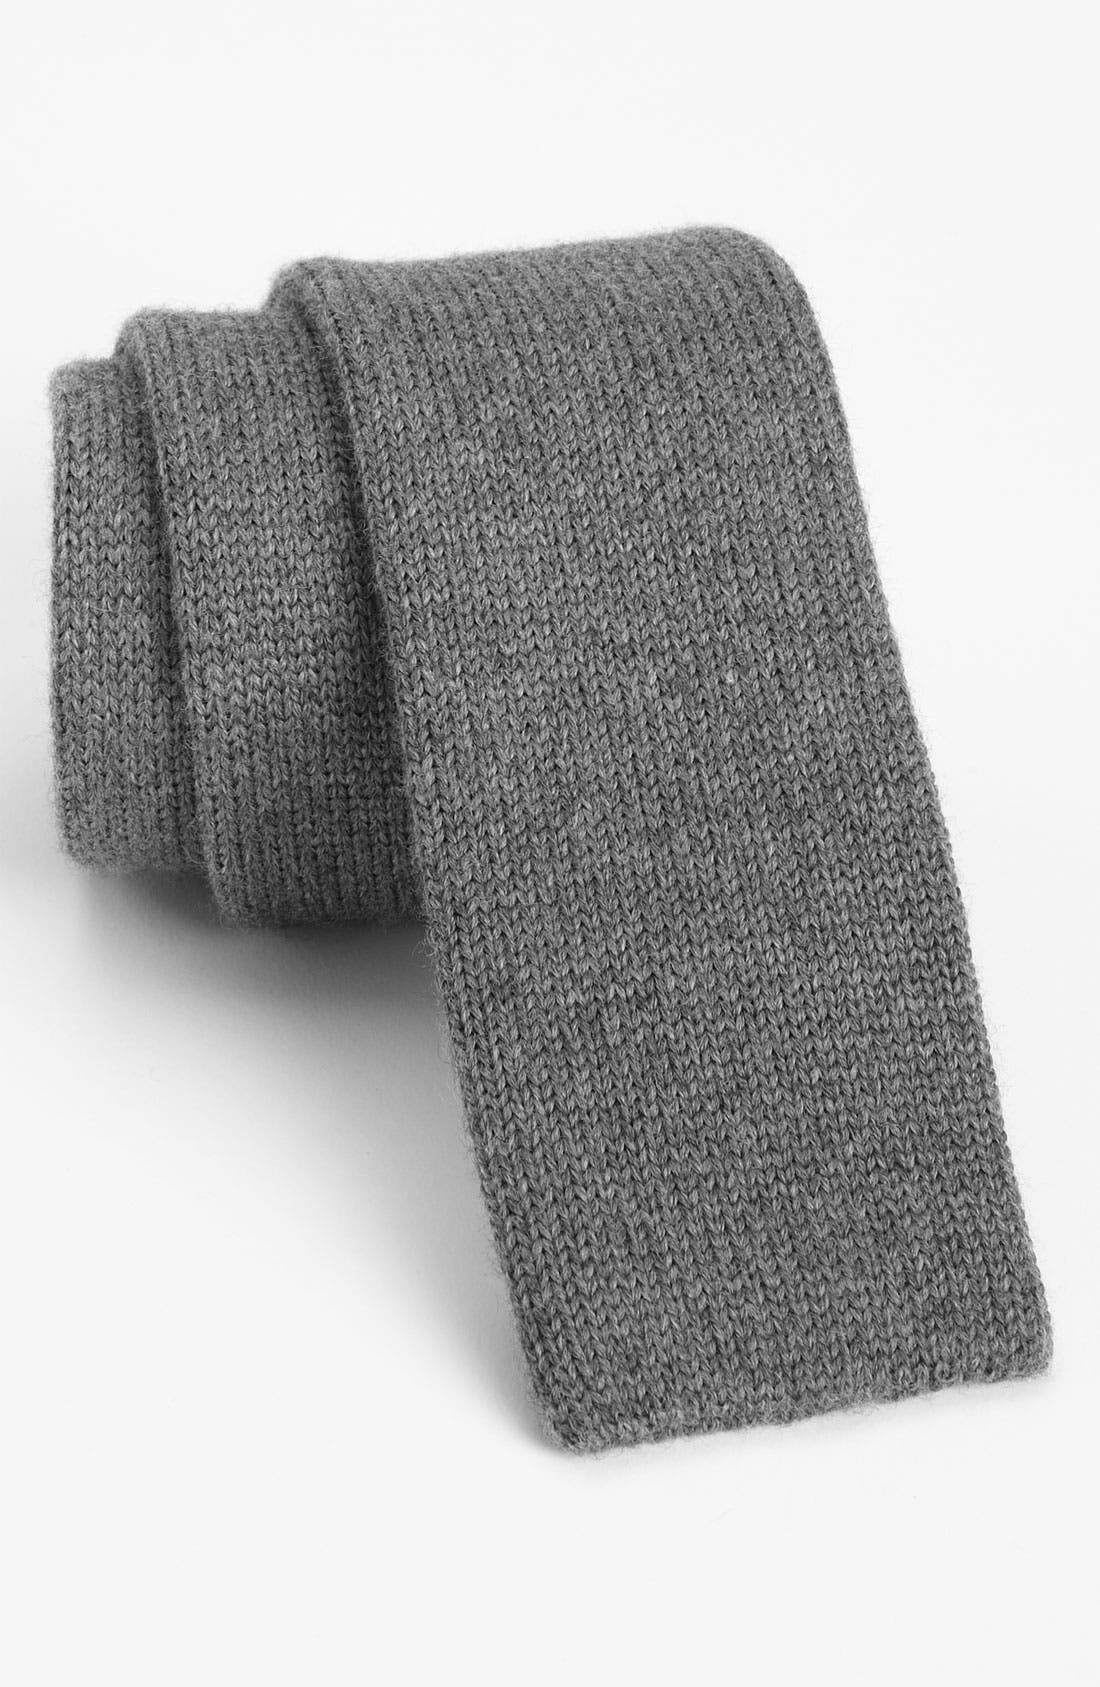 Alternate Image 1 Selected - BOSS Black Knit Tie